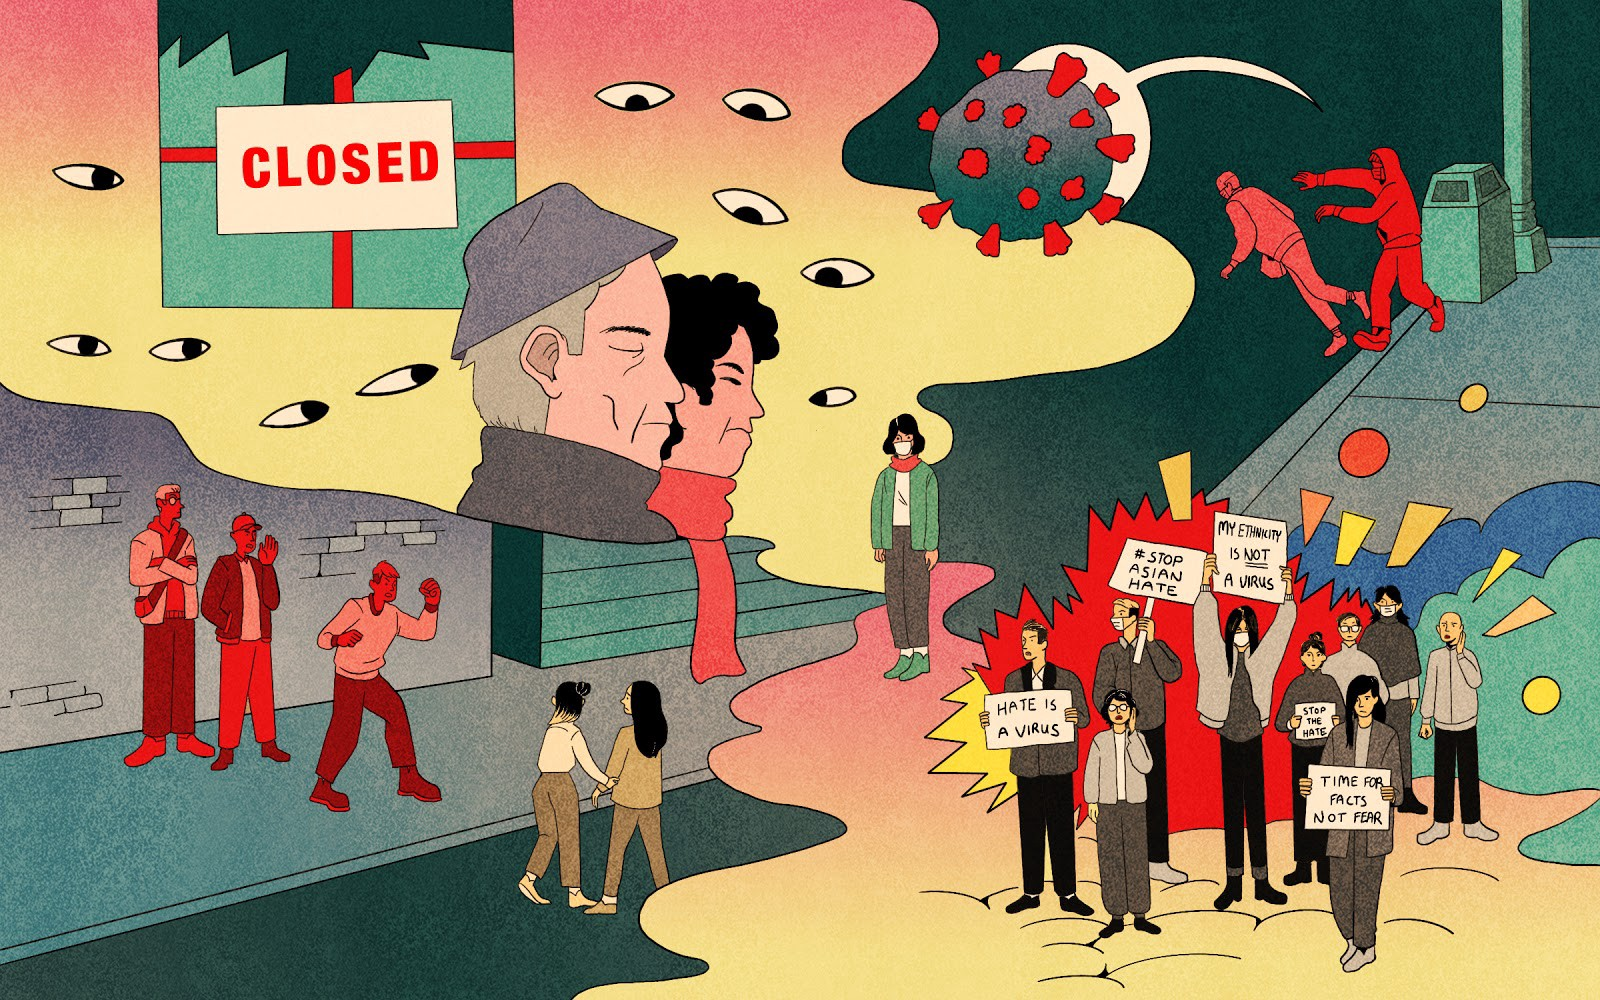 Illustration showing Asian Americans protesting, covid virus, anti-Asian hate on the streets, small businesses closing, portraying a tumultuous 2020.